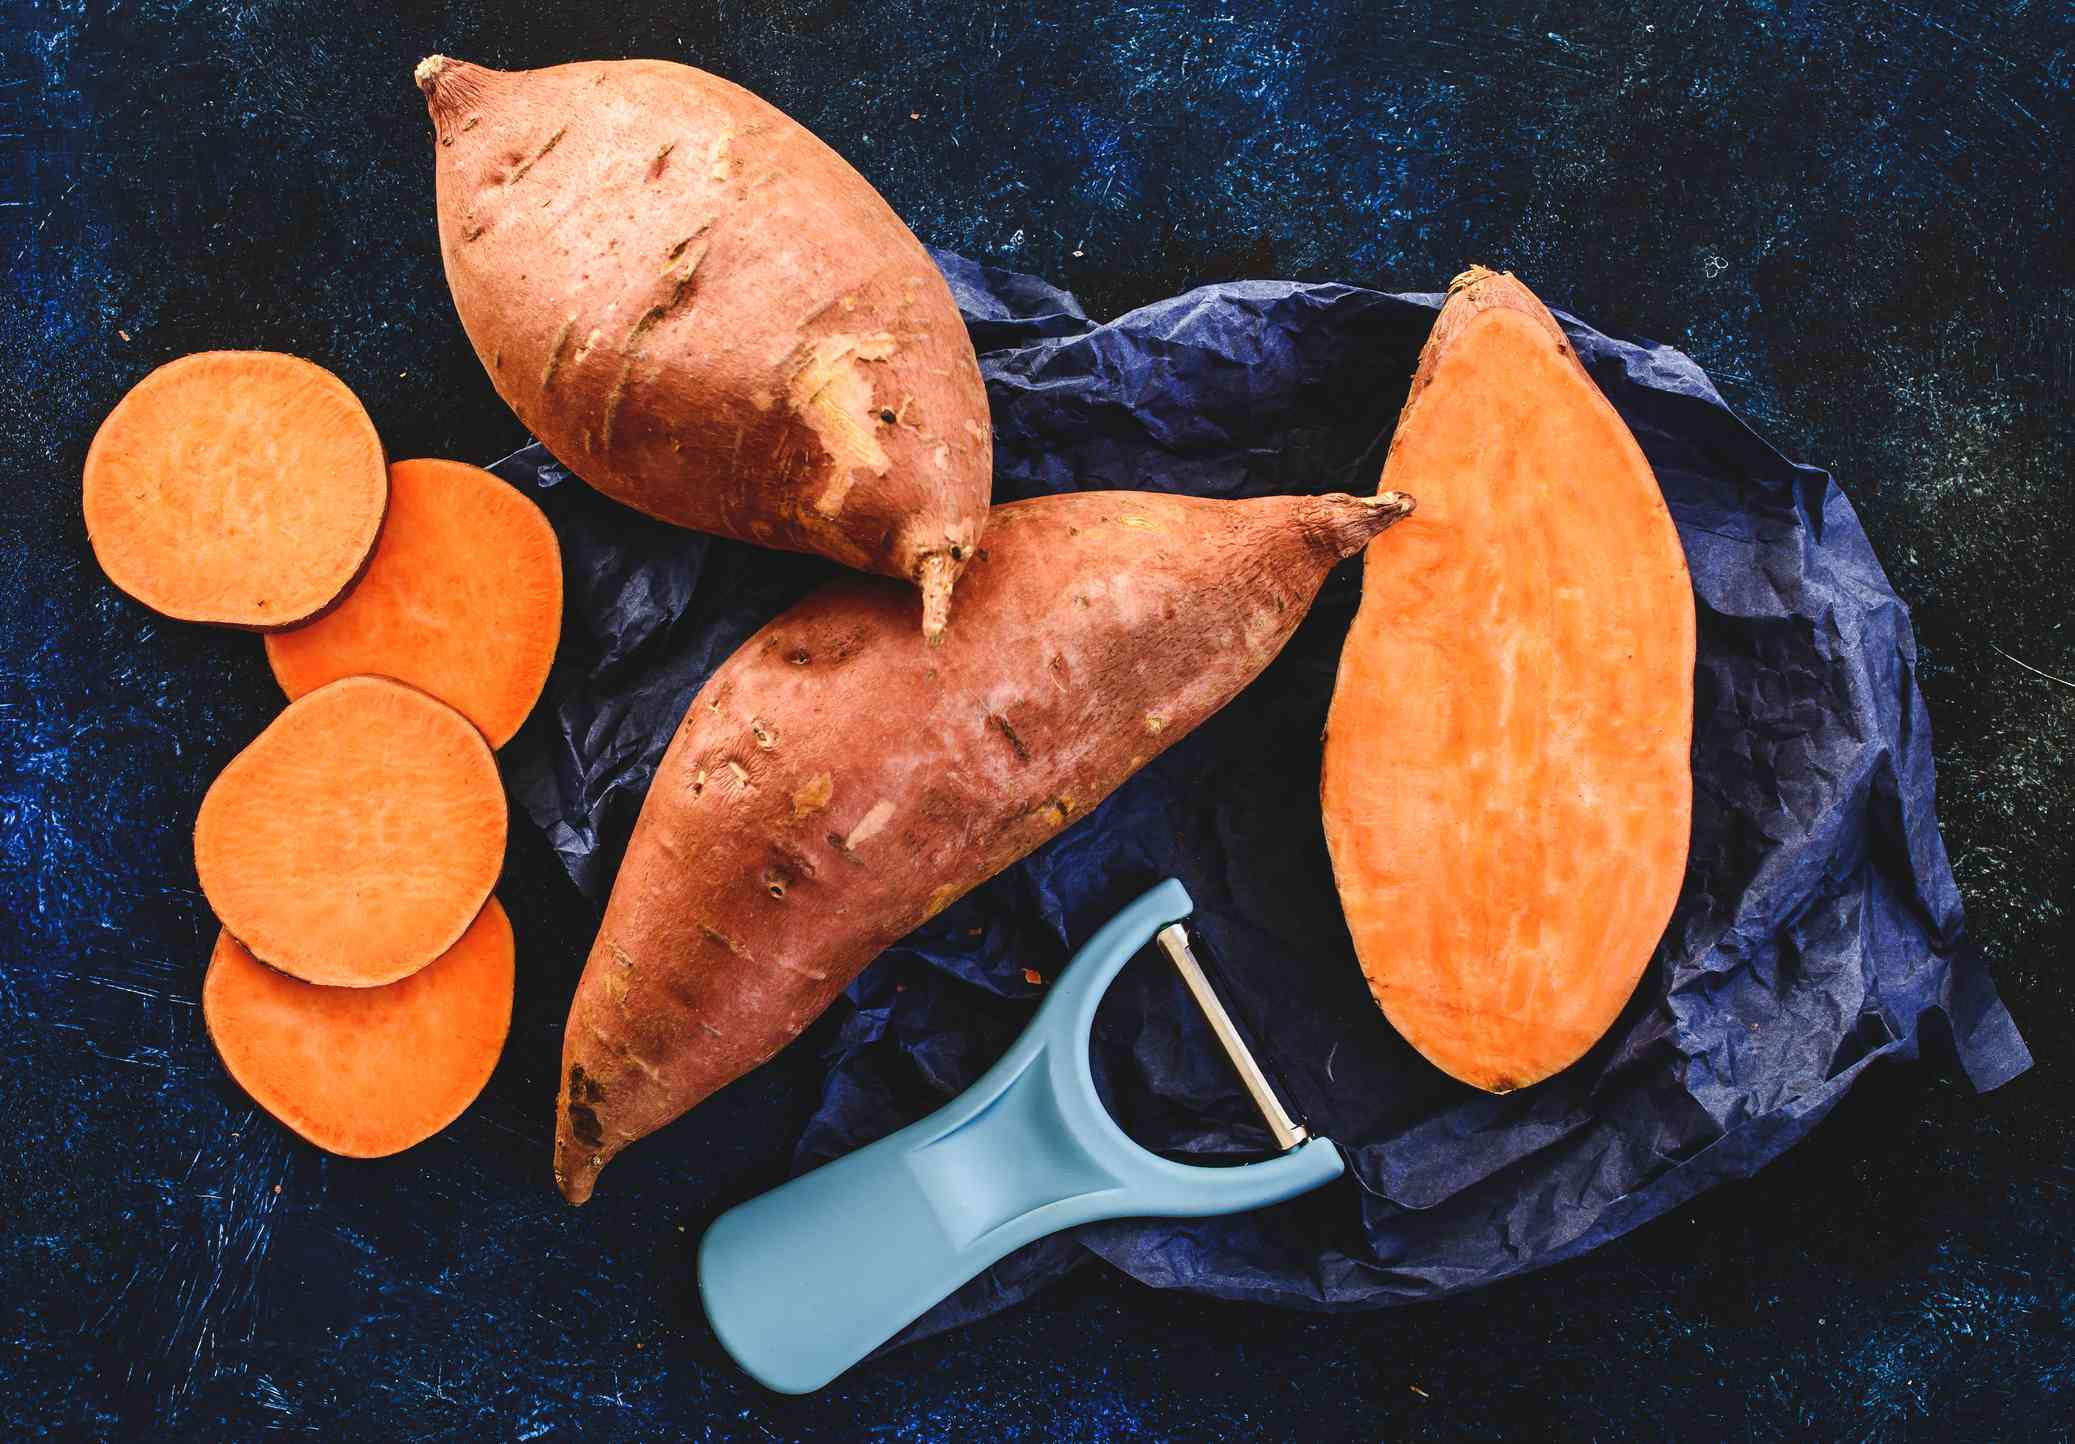 Birds eye view of two whole sweet potatoes and some sliced sweet potatoes next to peeler.